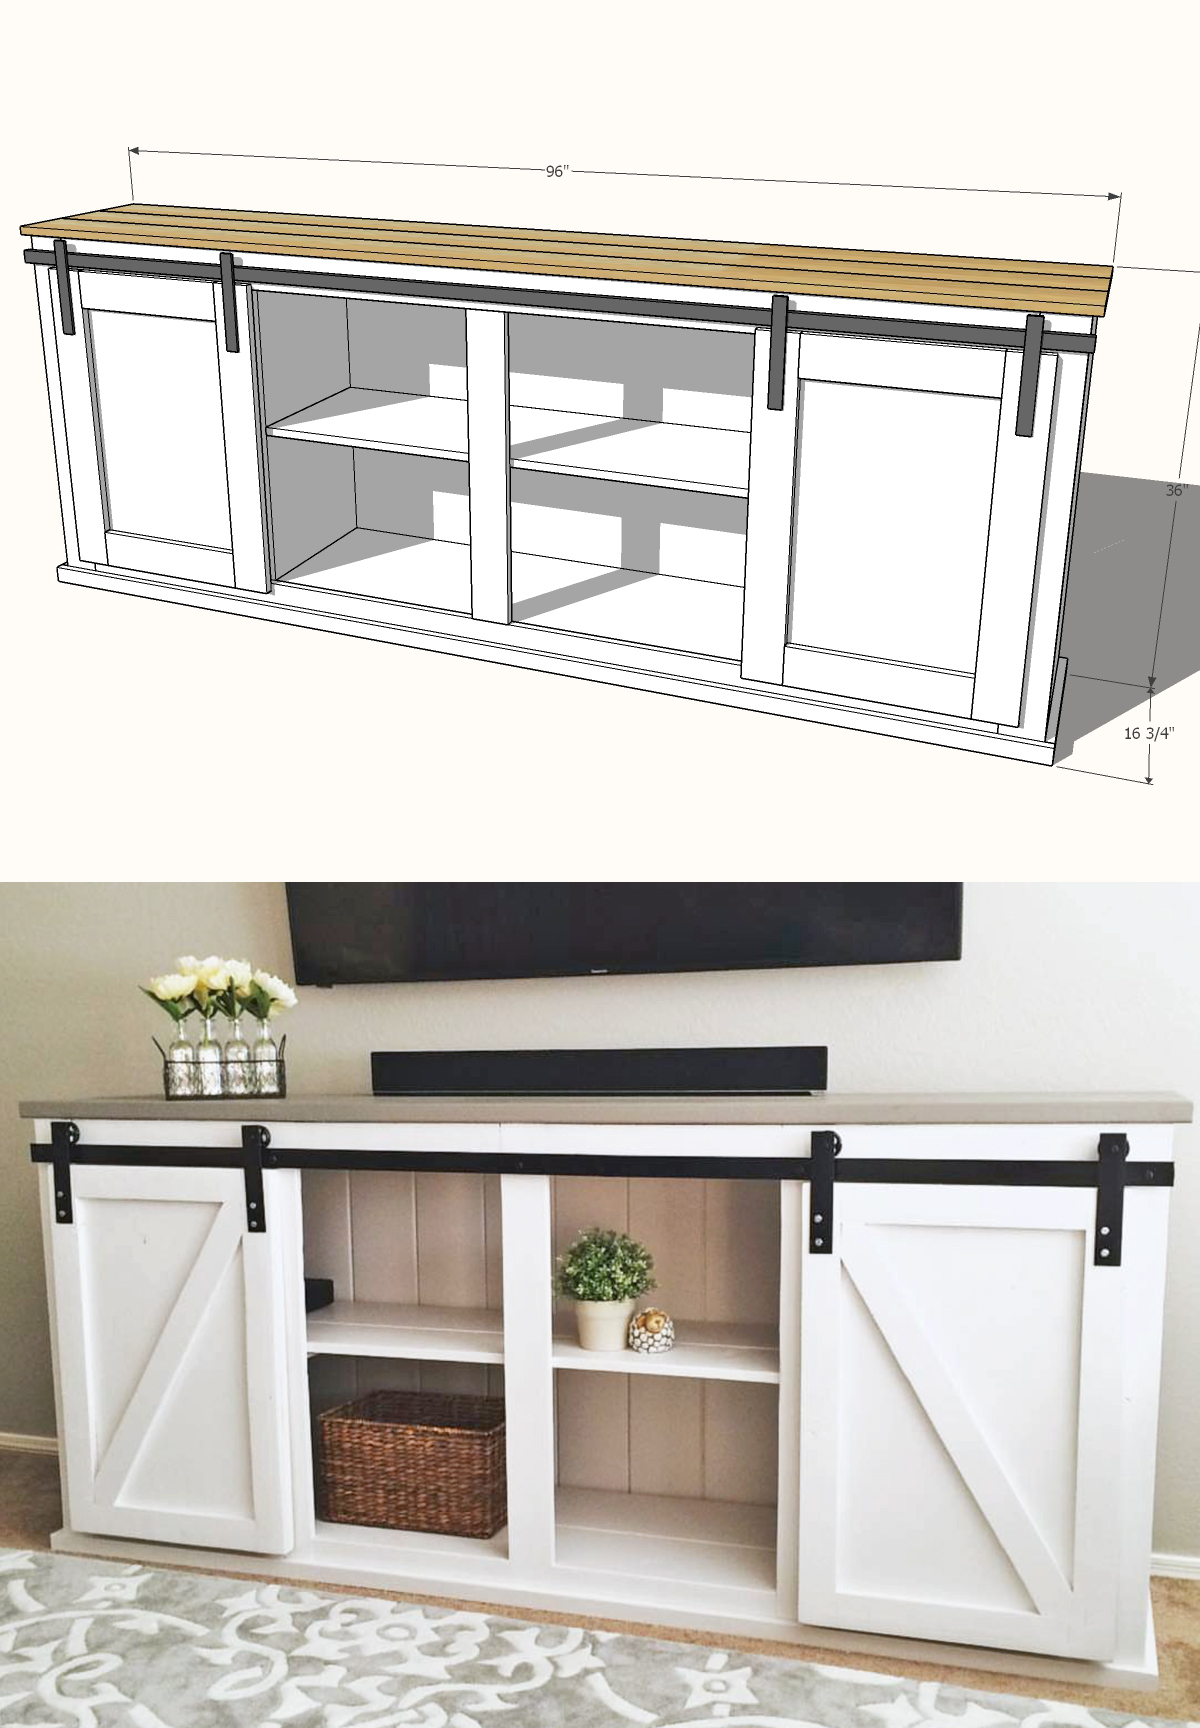 ana white barn door console plans